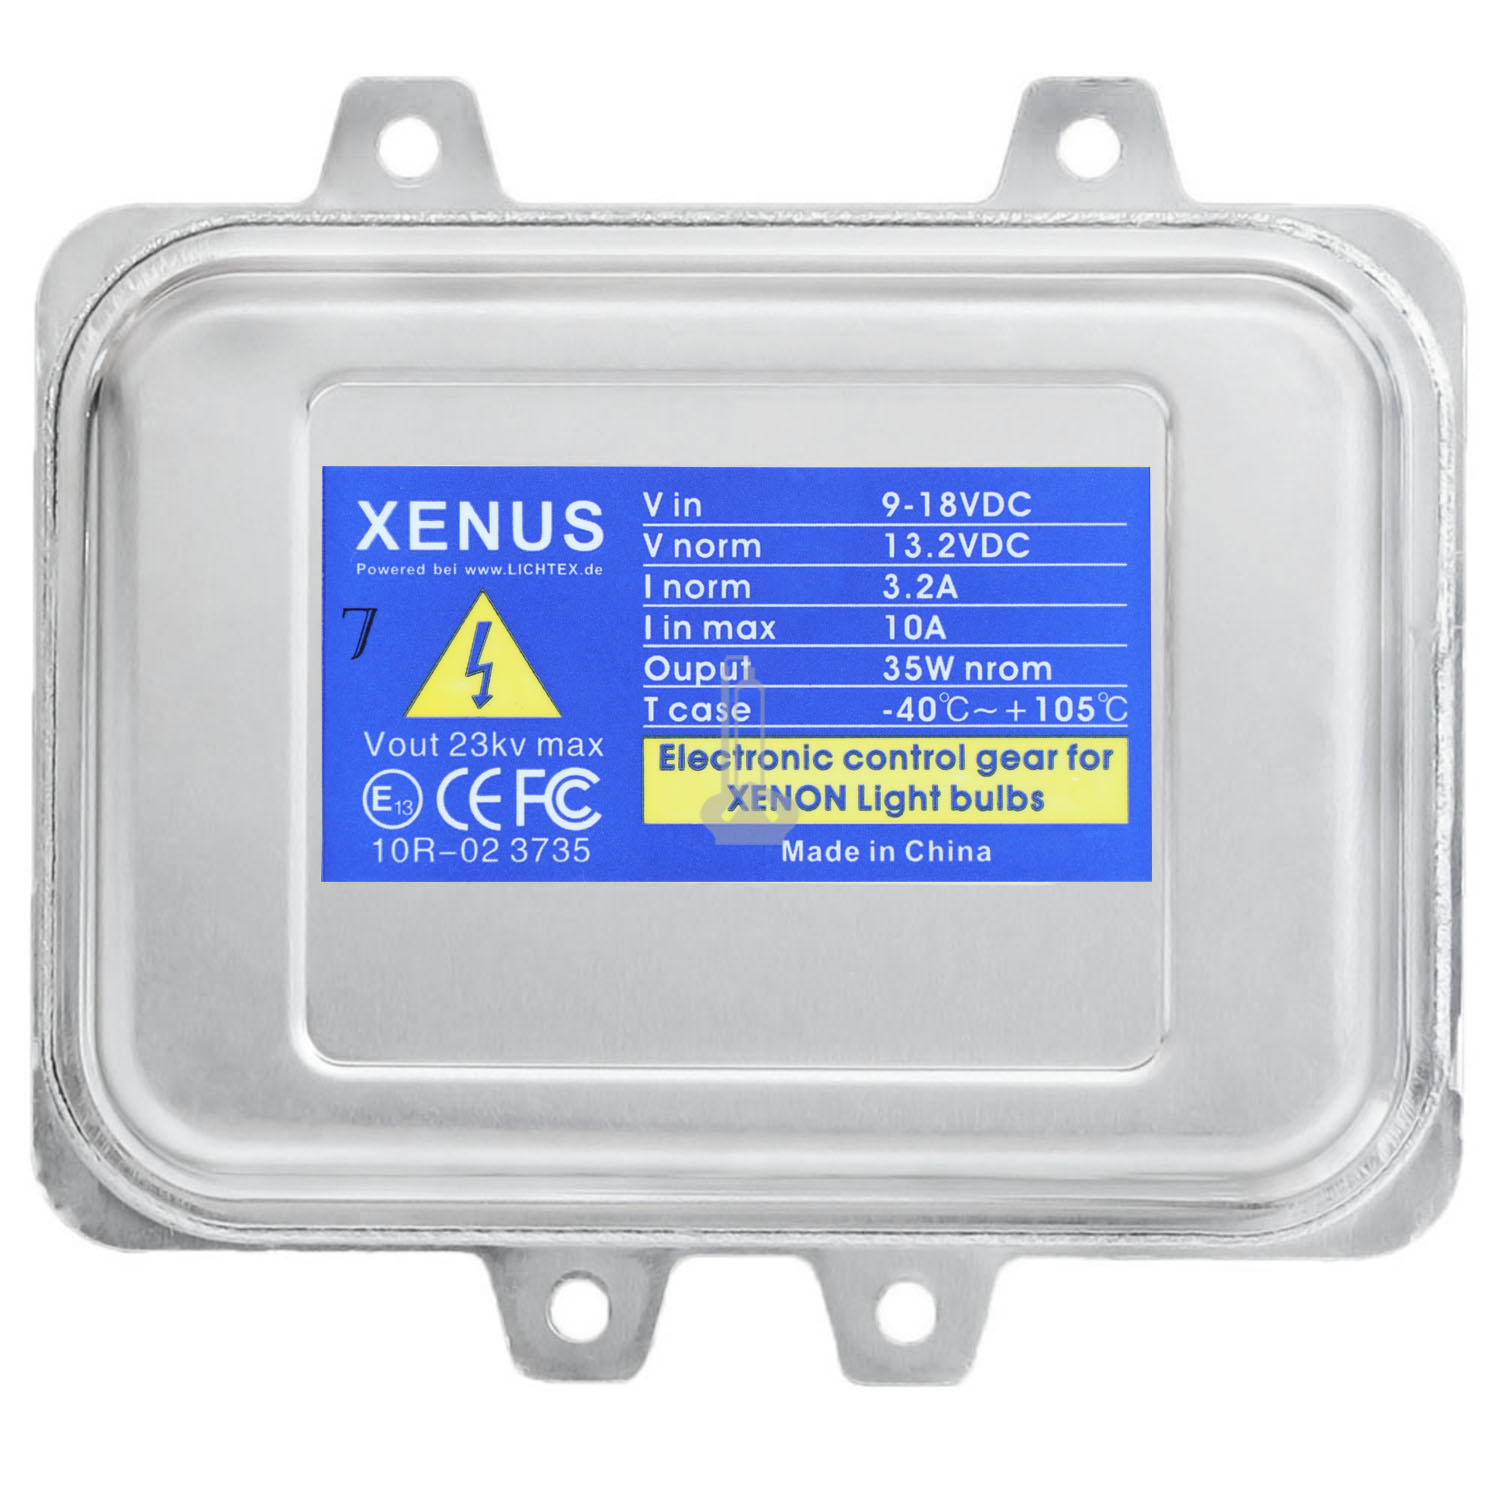 XENUS 5DV 009 000 Xenon Headlight Ballast, Replacement for Hella